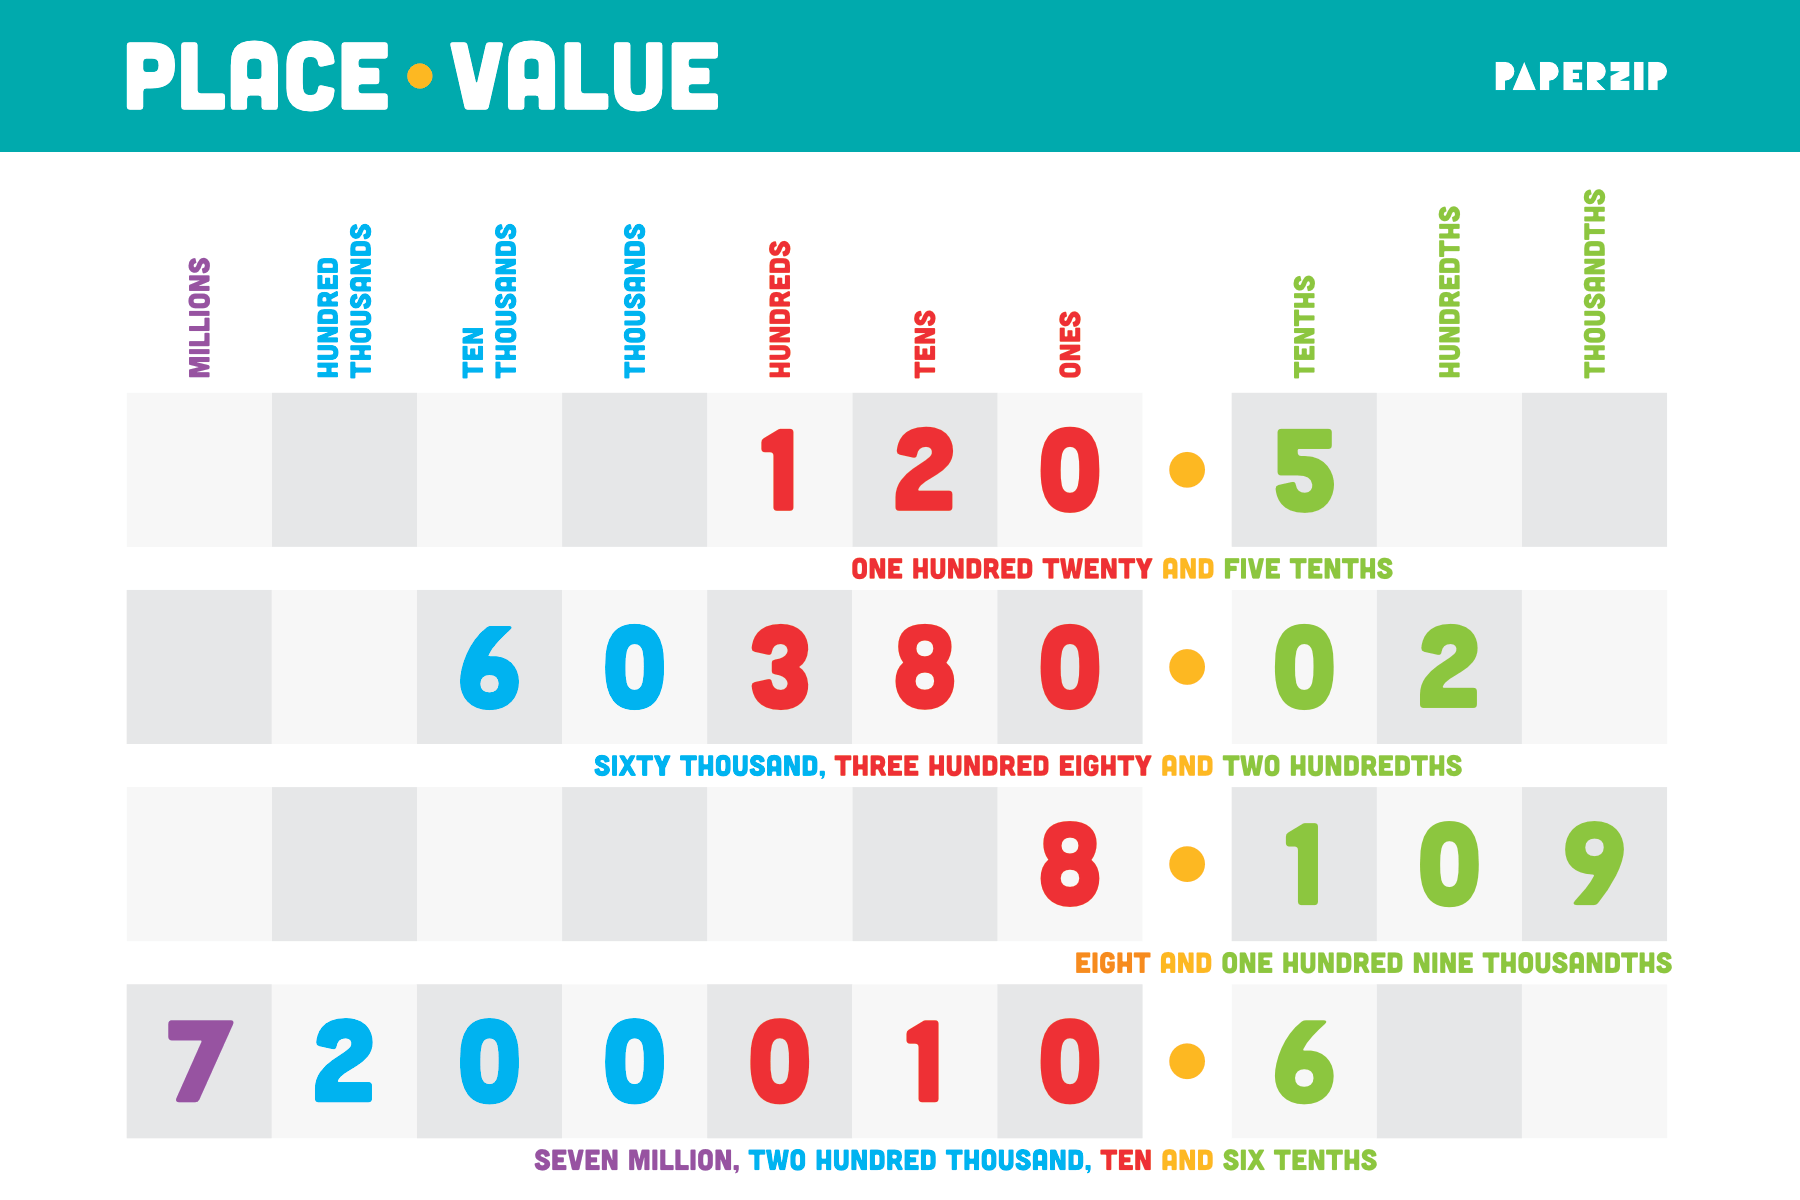 photograph about Place Value Strips Printable identified as PAPERZIP - Cost-free Coaching Supplies